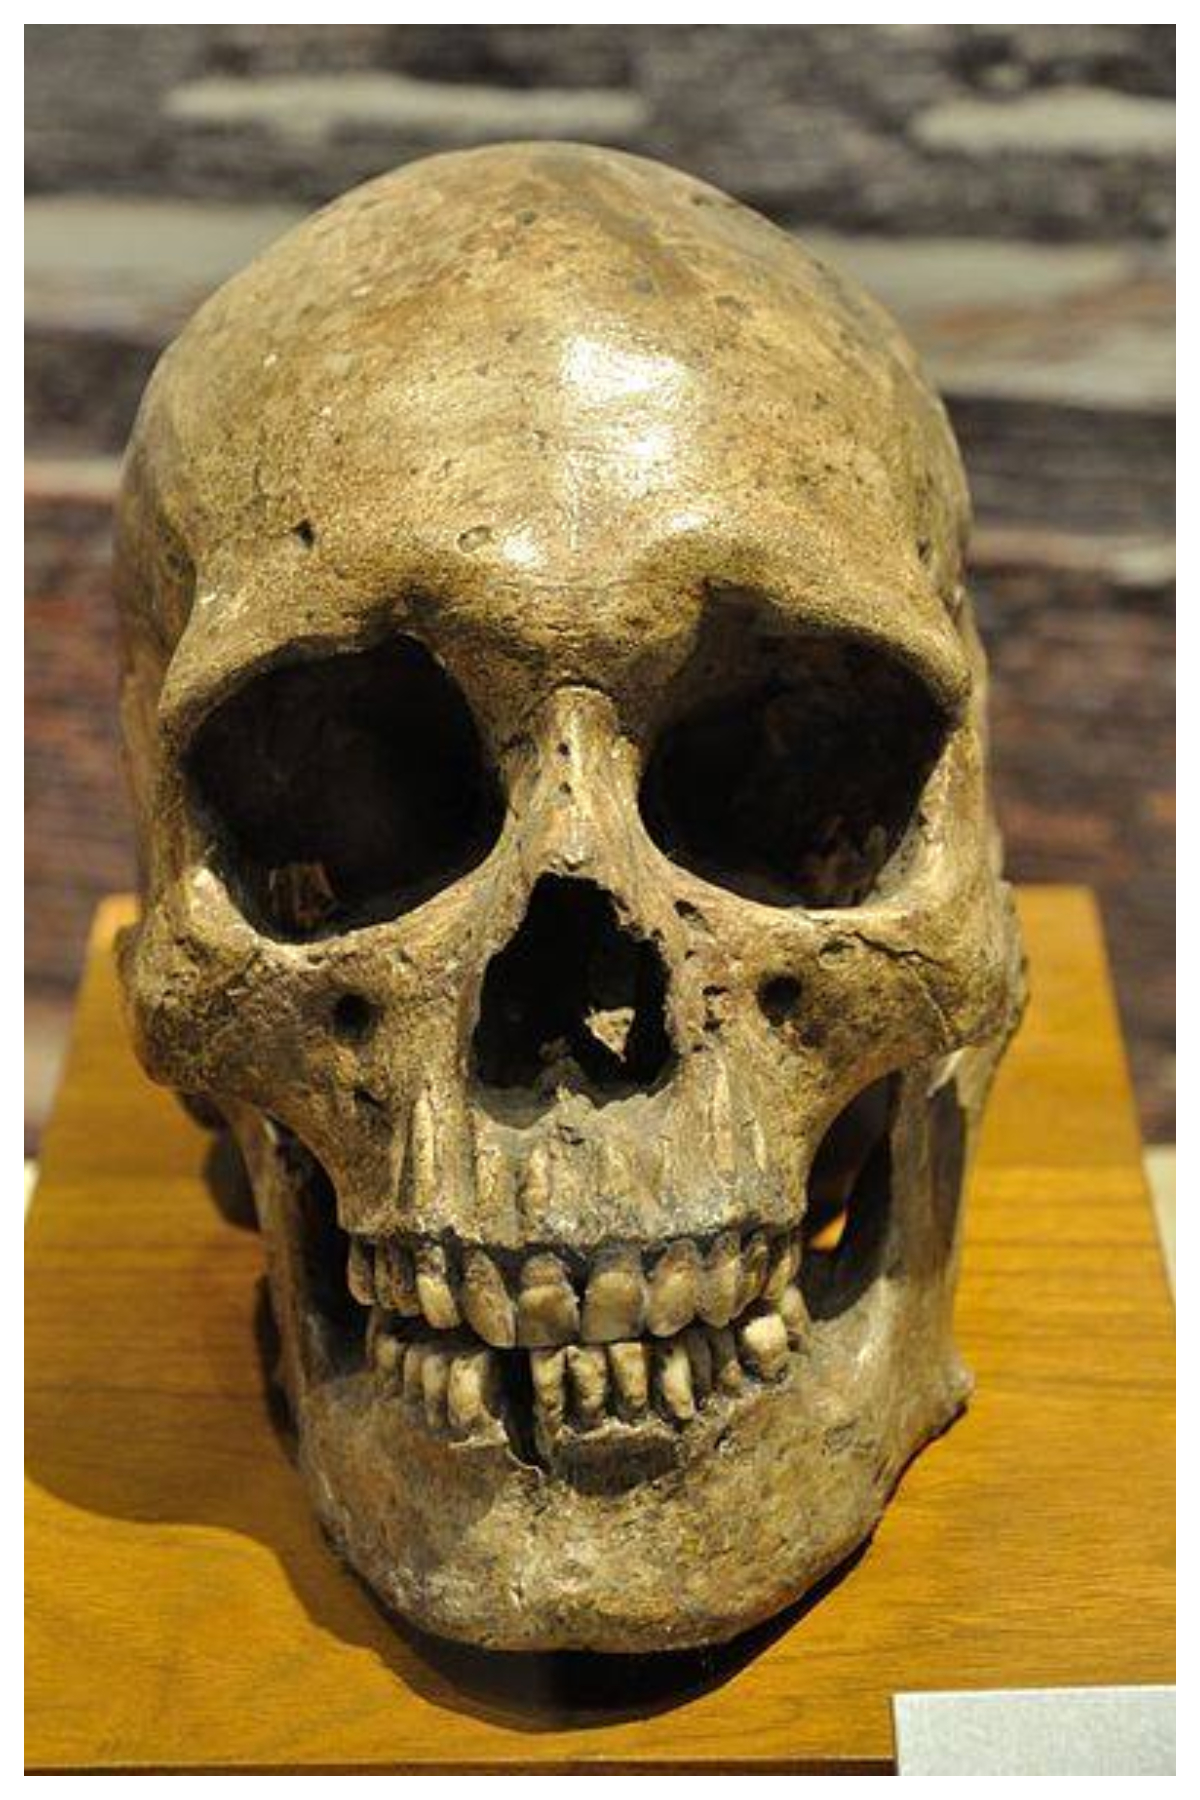 Human Skull - 2600-1700 BCE from Harappa.'' Indian Museum, Kolkata